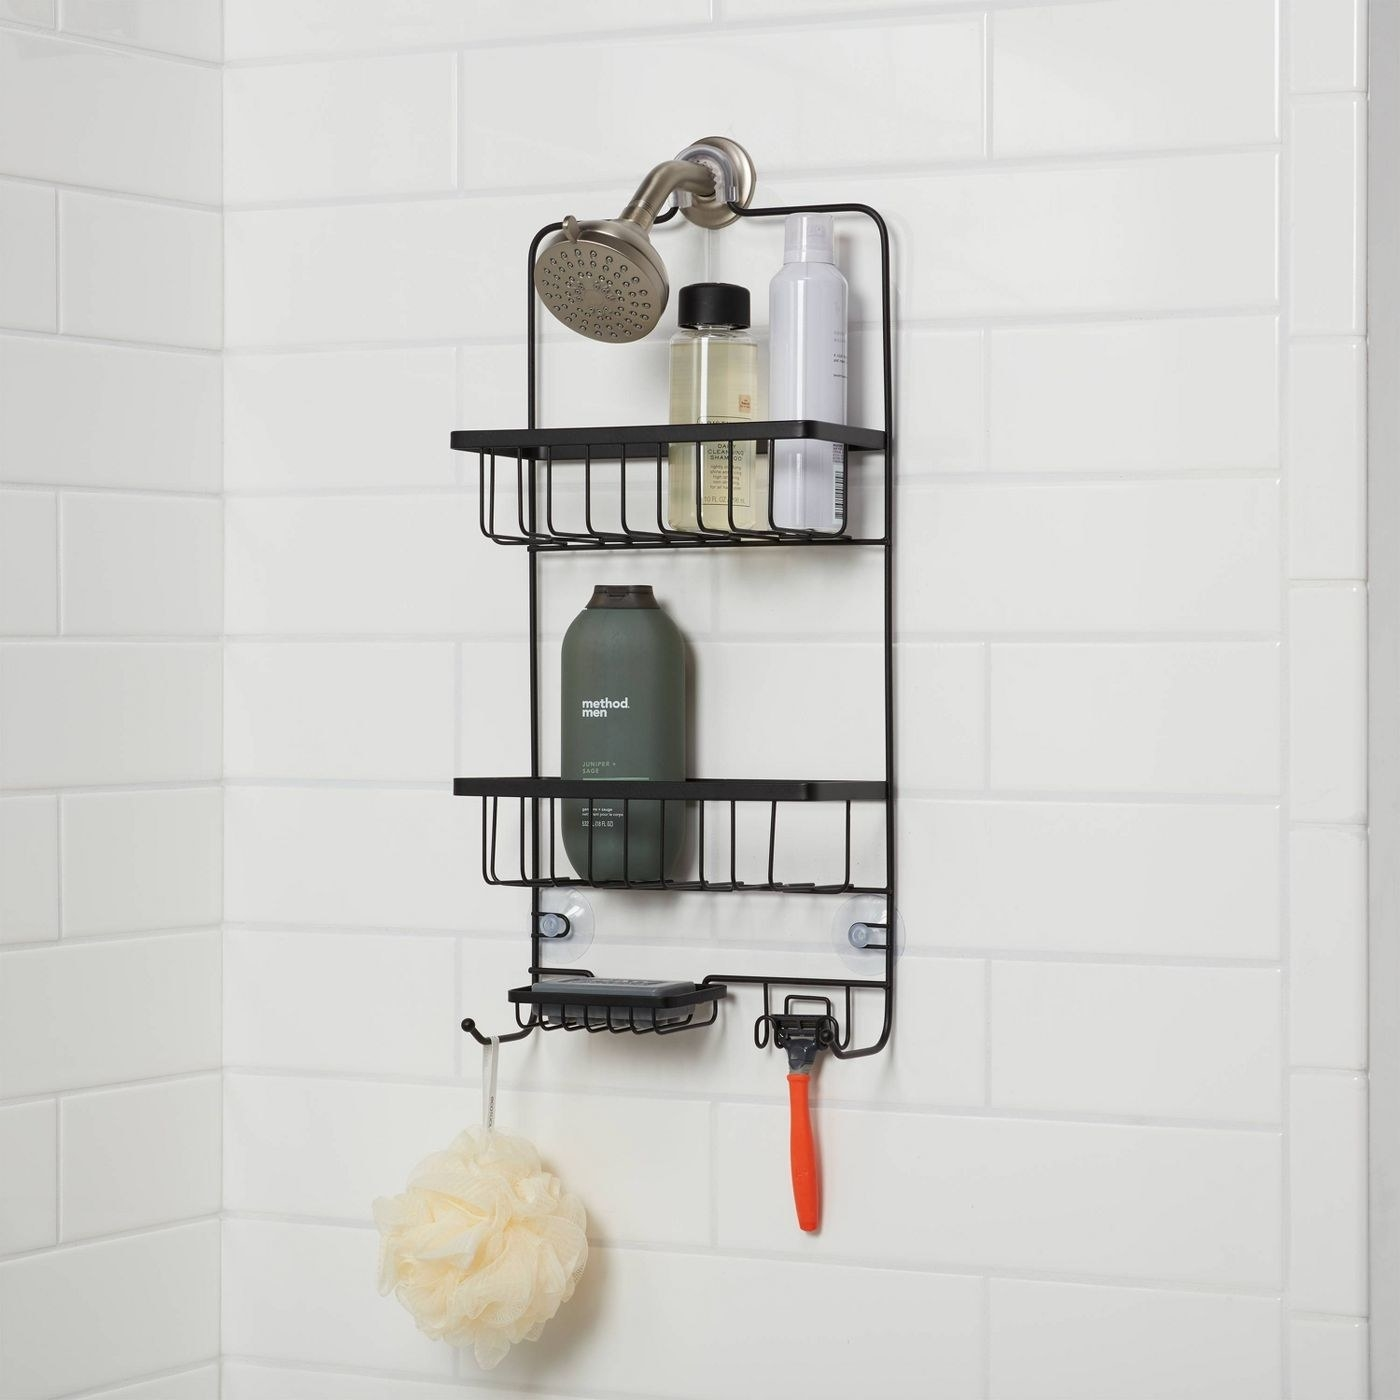 The black shower caddy